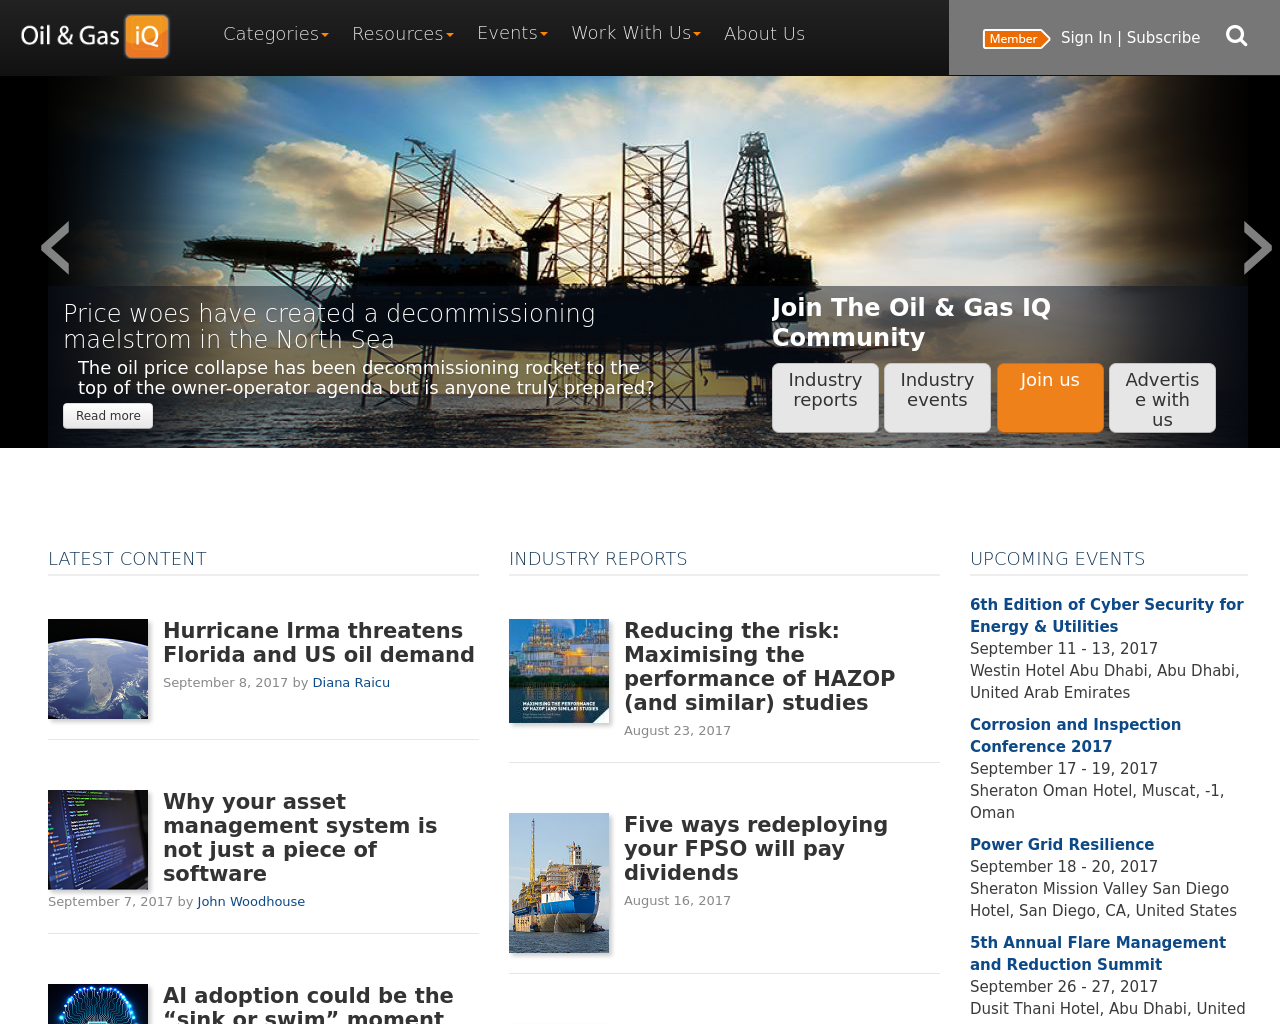 Oil-&-Gas-IQ-Advertising-Reviews-Pricing